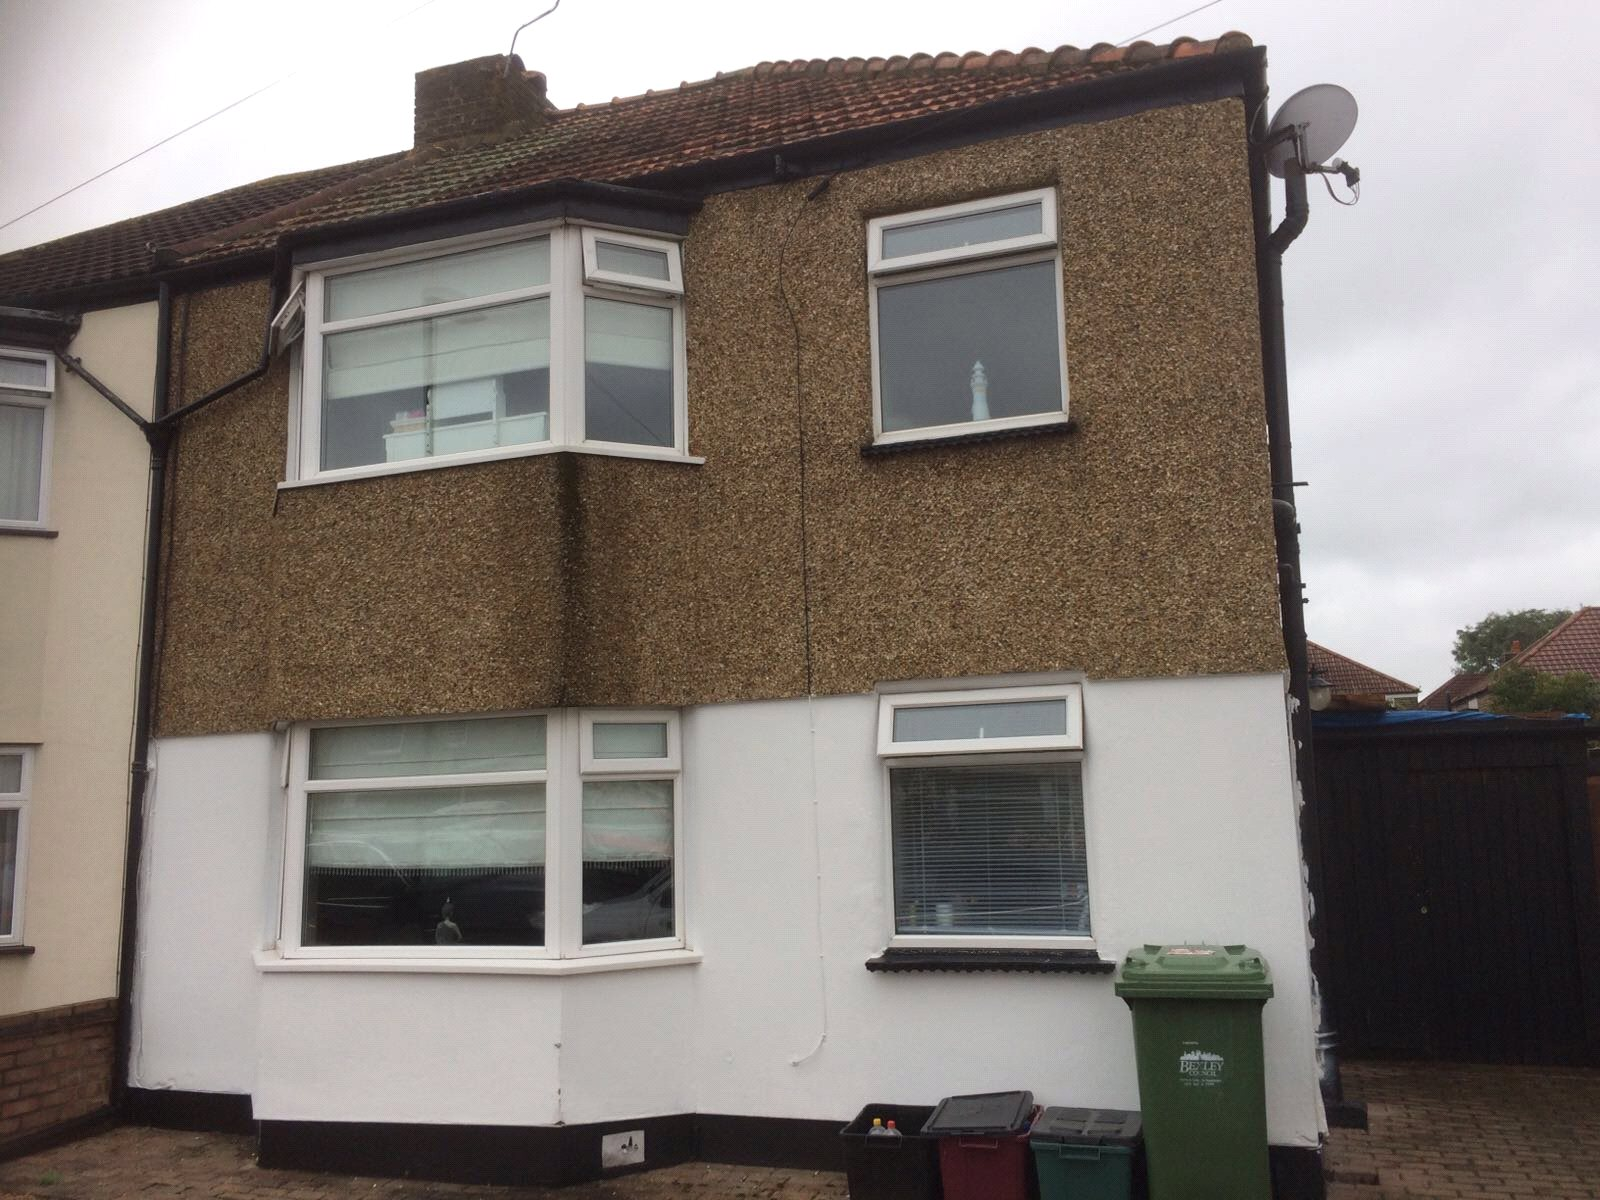 3 Bedrooms Semi Detached House for sale in Granville Road Welling Kent DA16